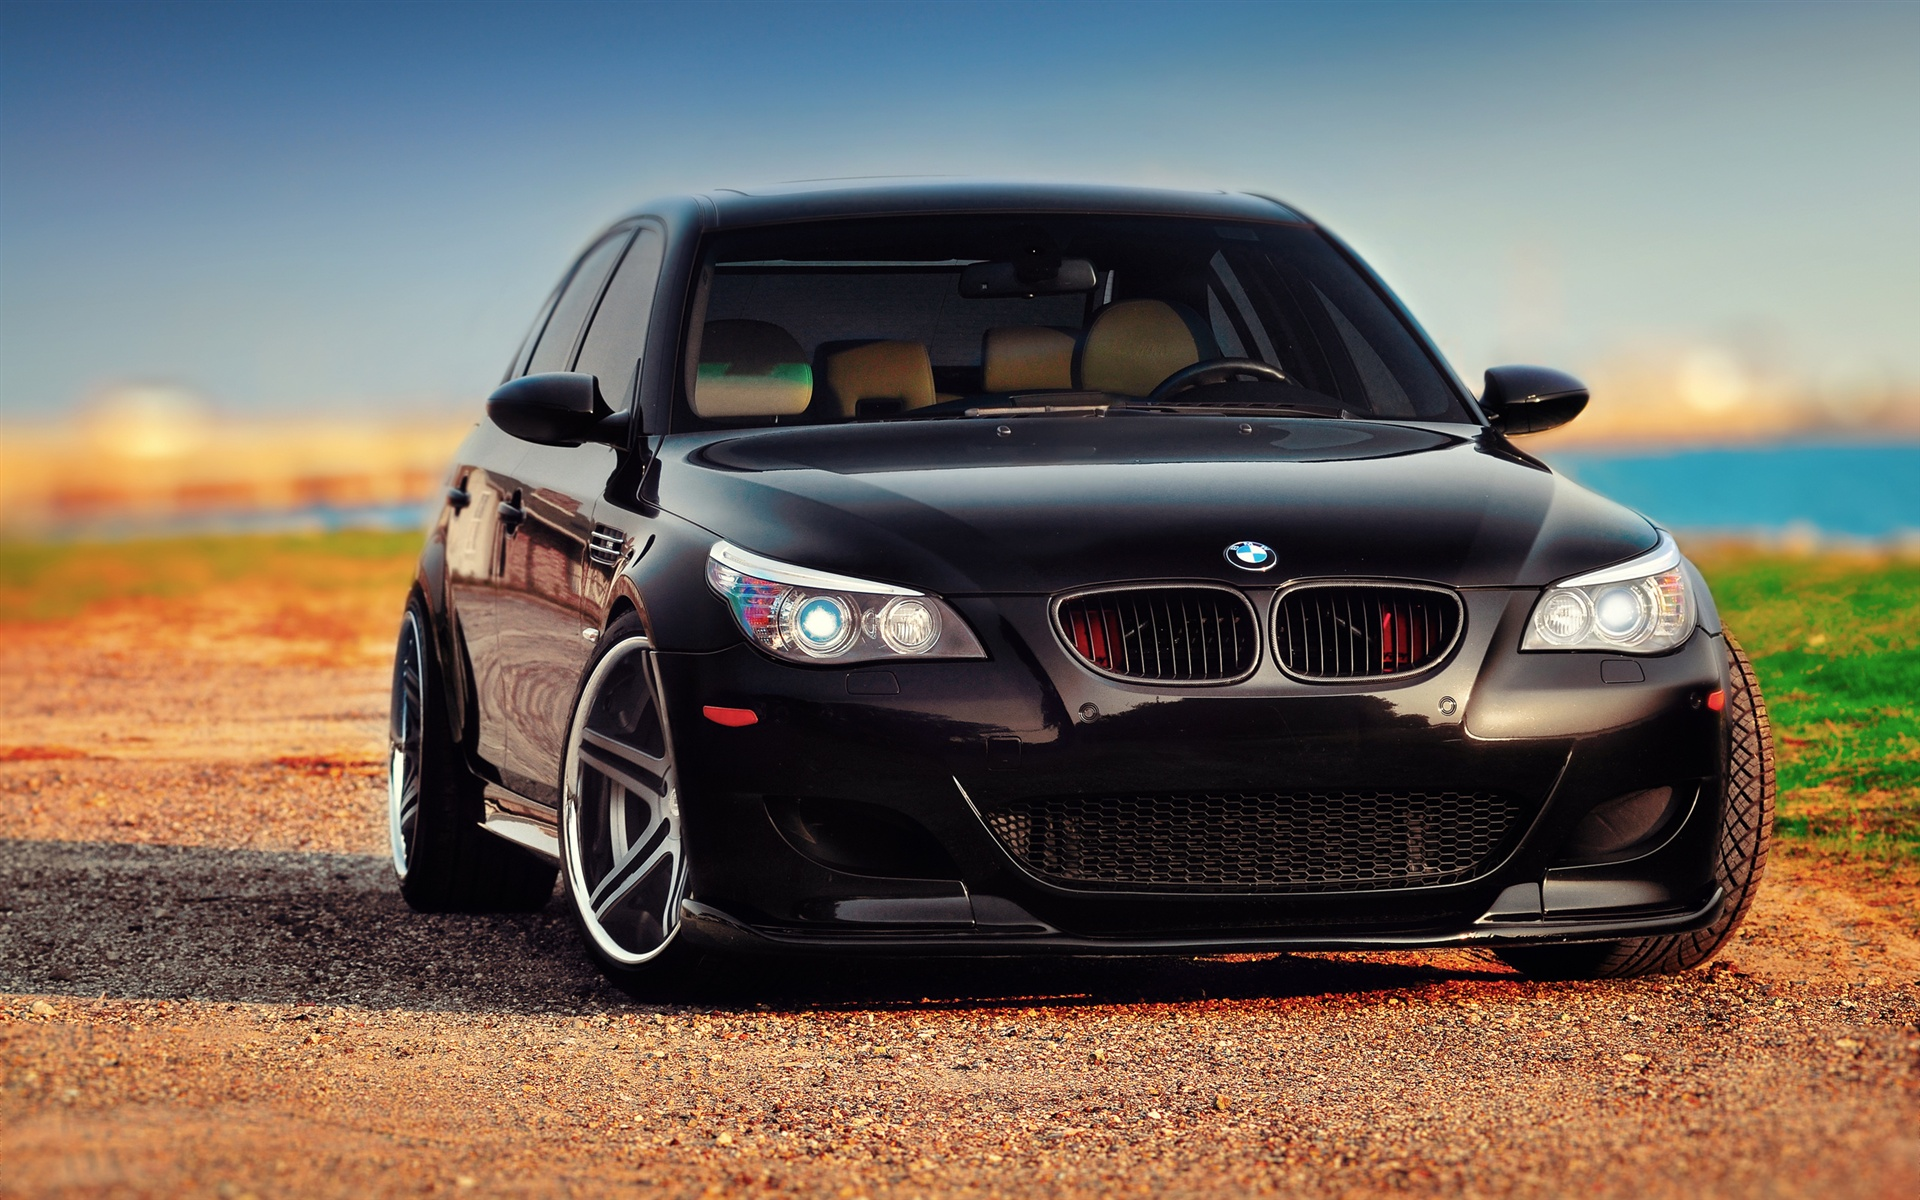 Wallpaper Bmw M5 E60 Black Car Front View 2560x1600 Hd Picture Image